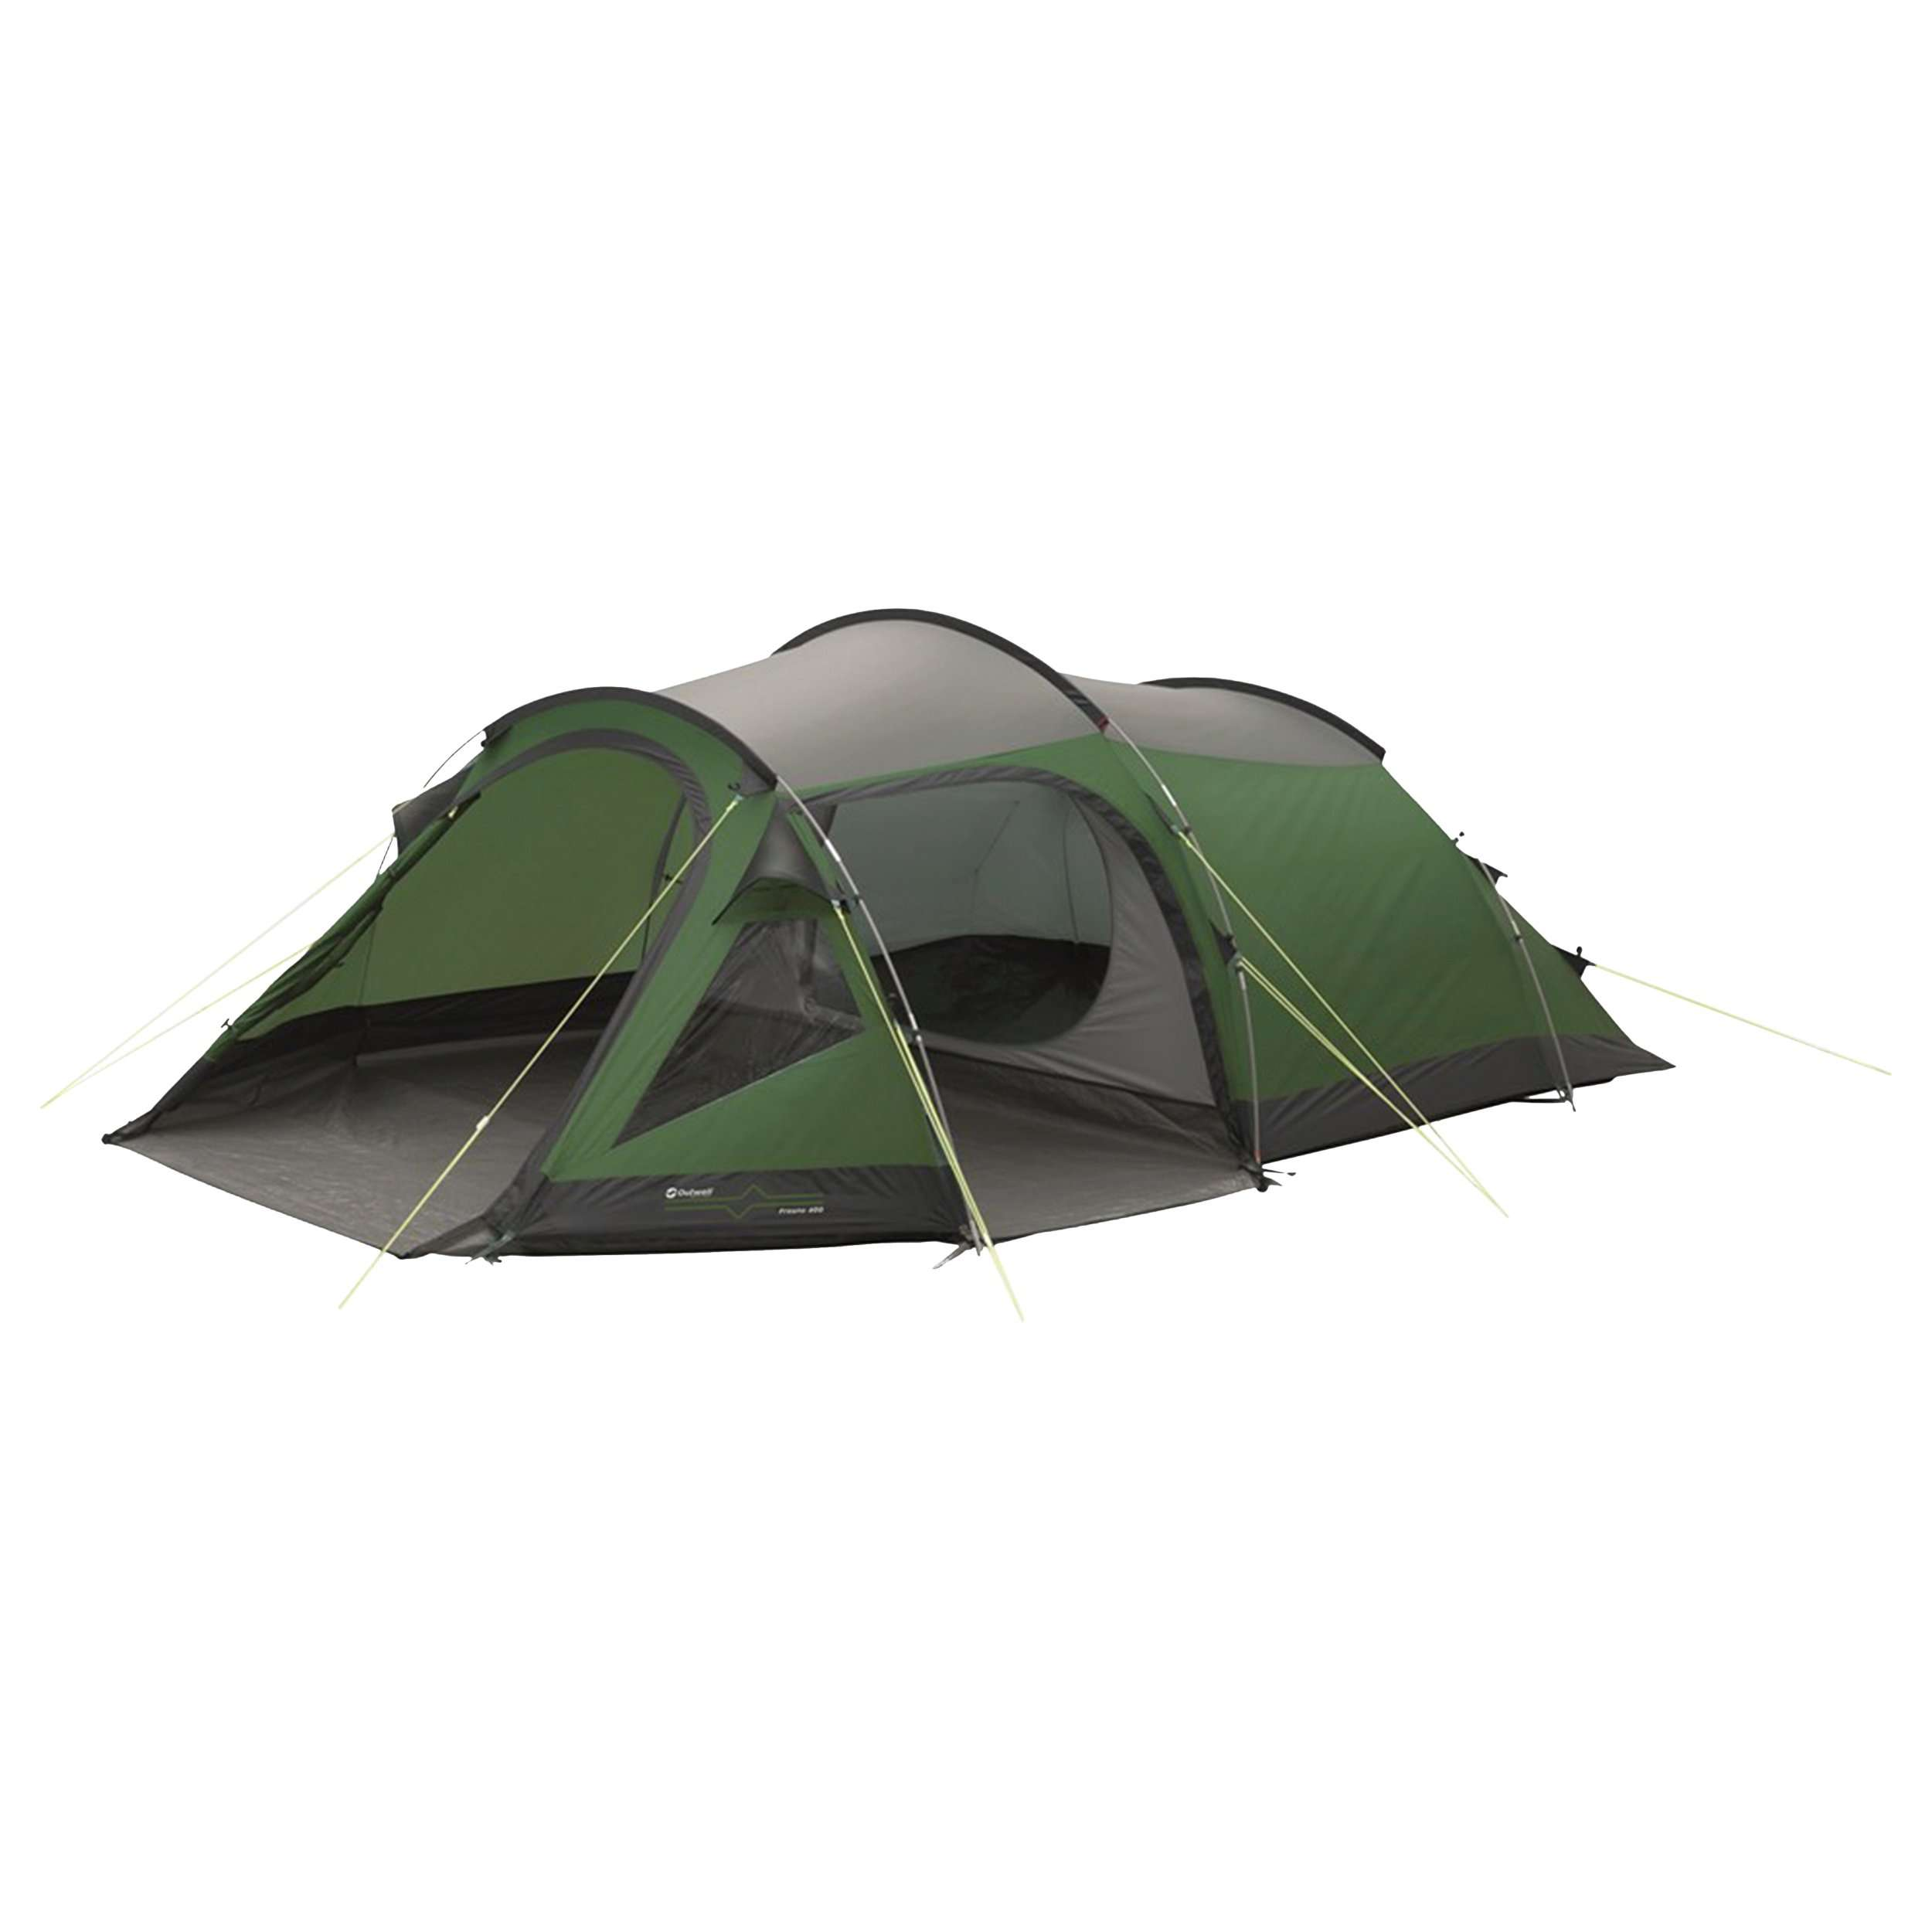 OUTWELL Fresno 400 Family Tent